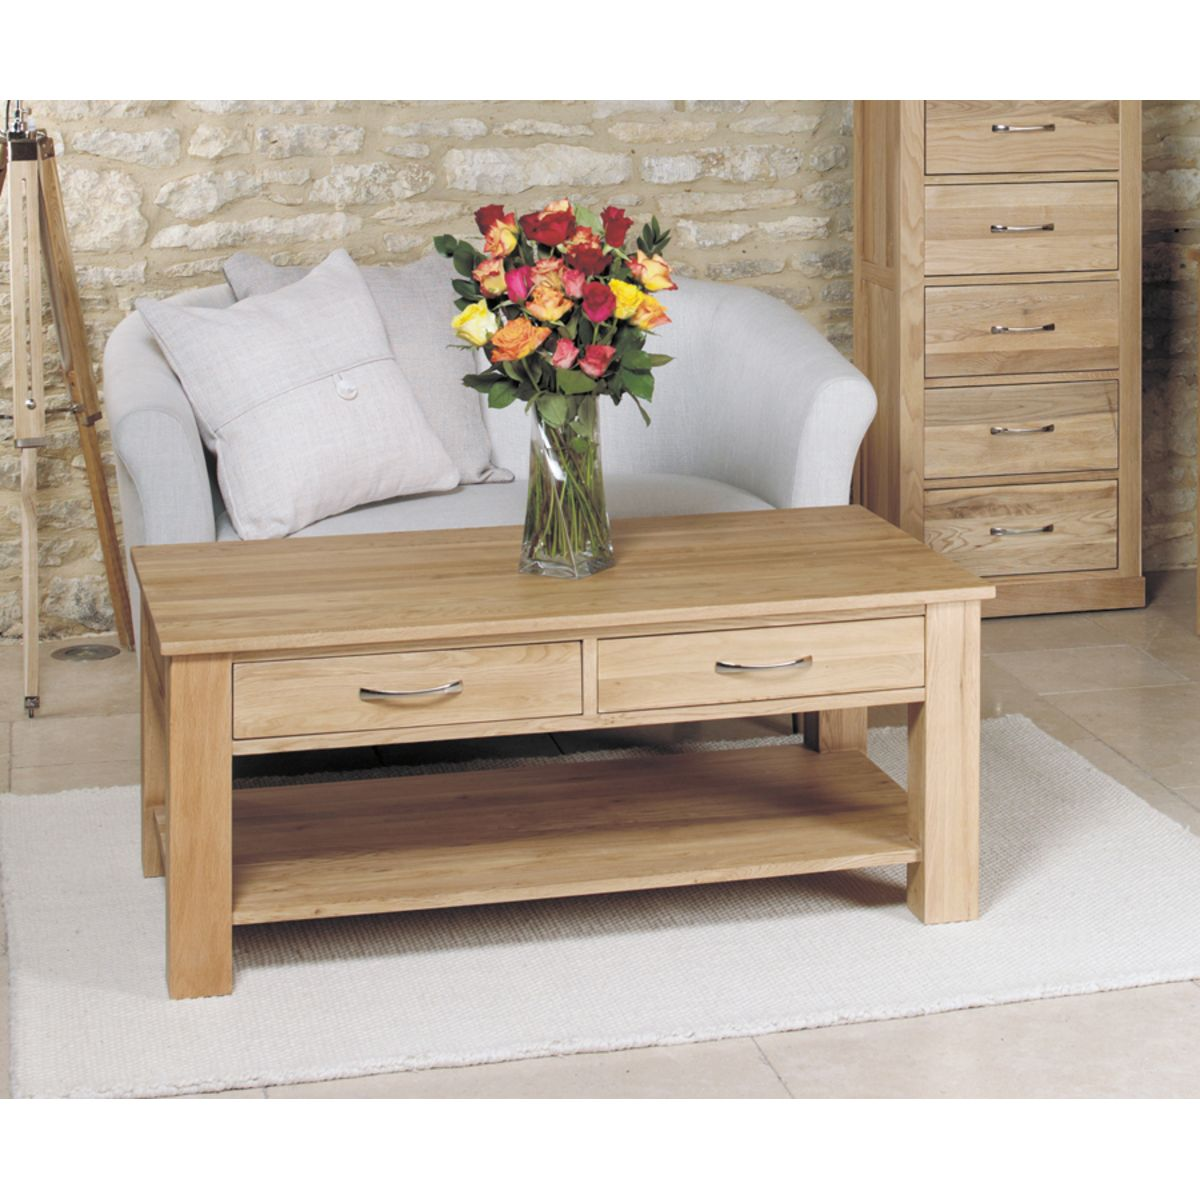 Indore Coffee Table With 6 Drawers: Mobel Oak Four Drawer Coffee Table